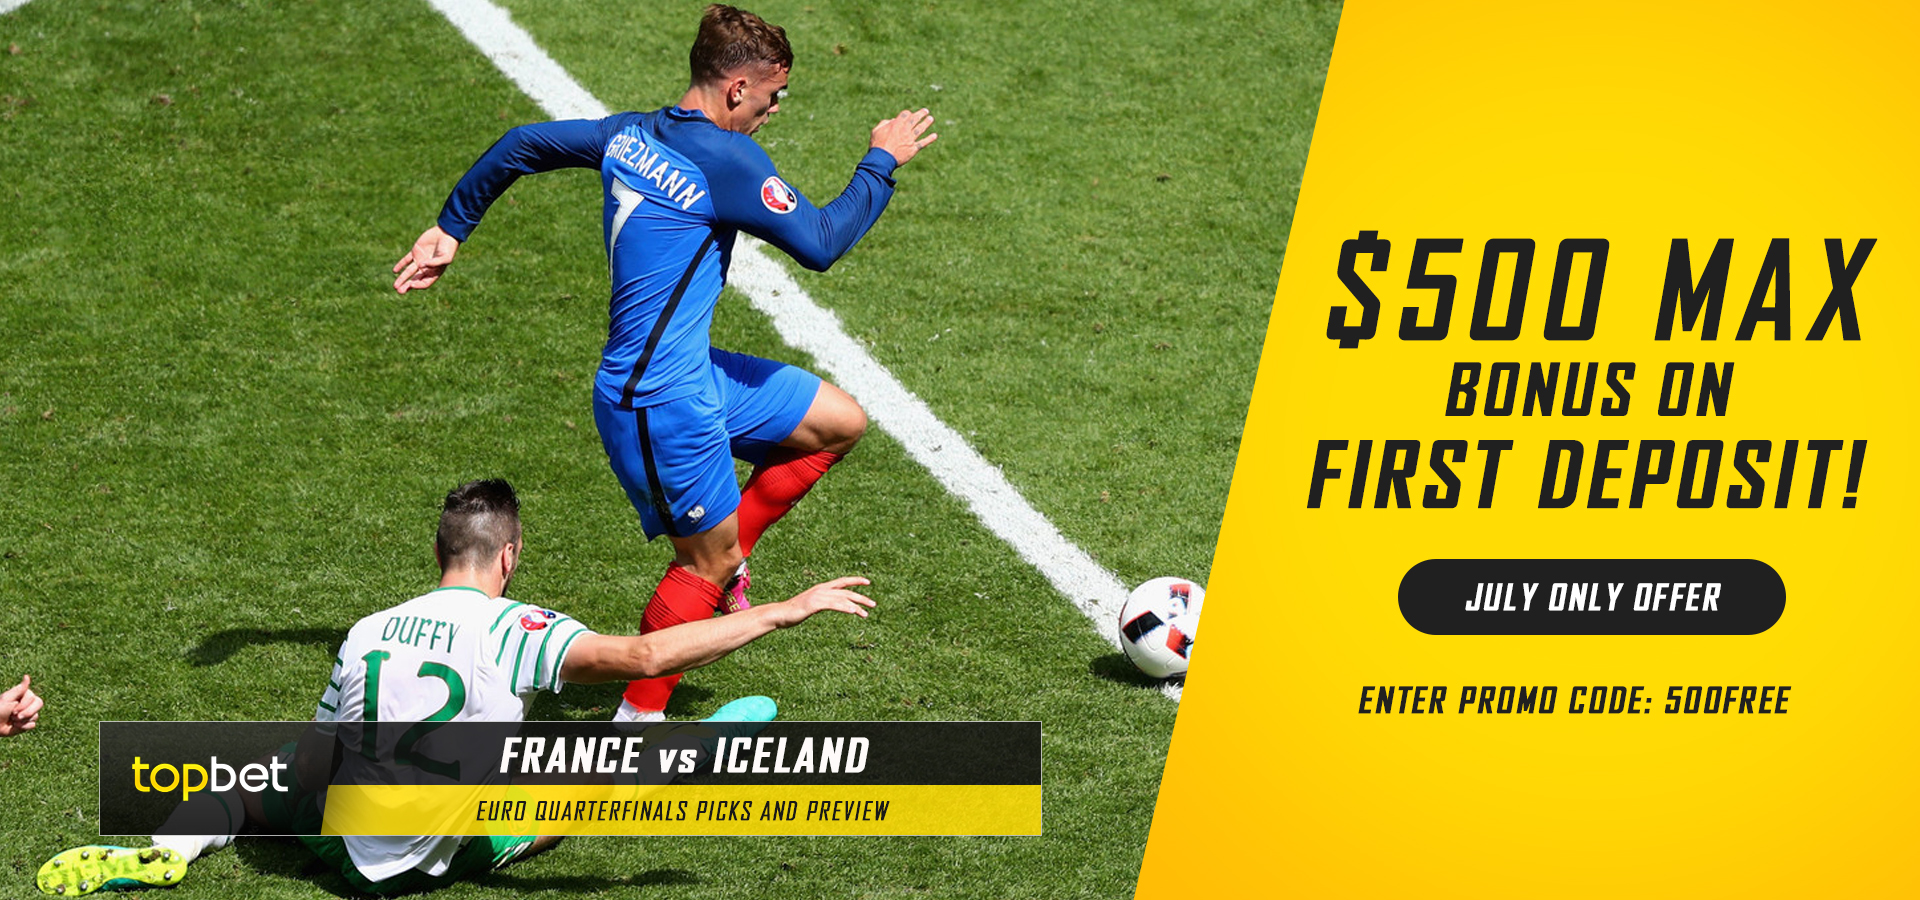 France vs Iceland – 2016 Euro Cup Quarterfinal Predictions